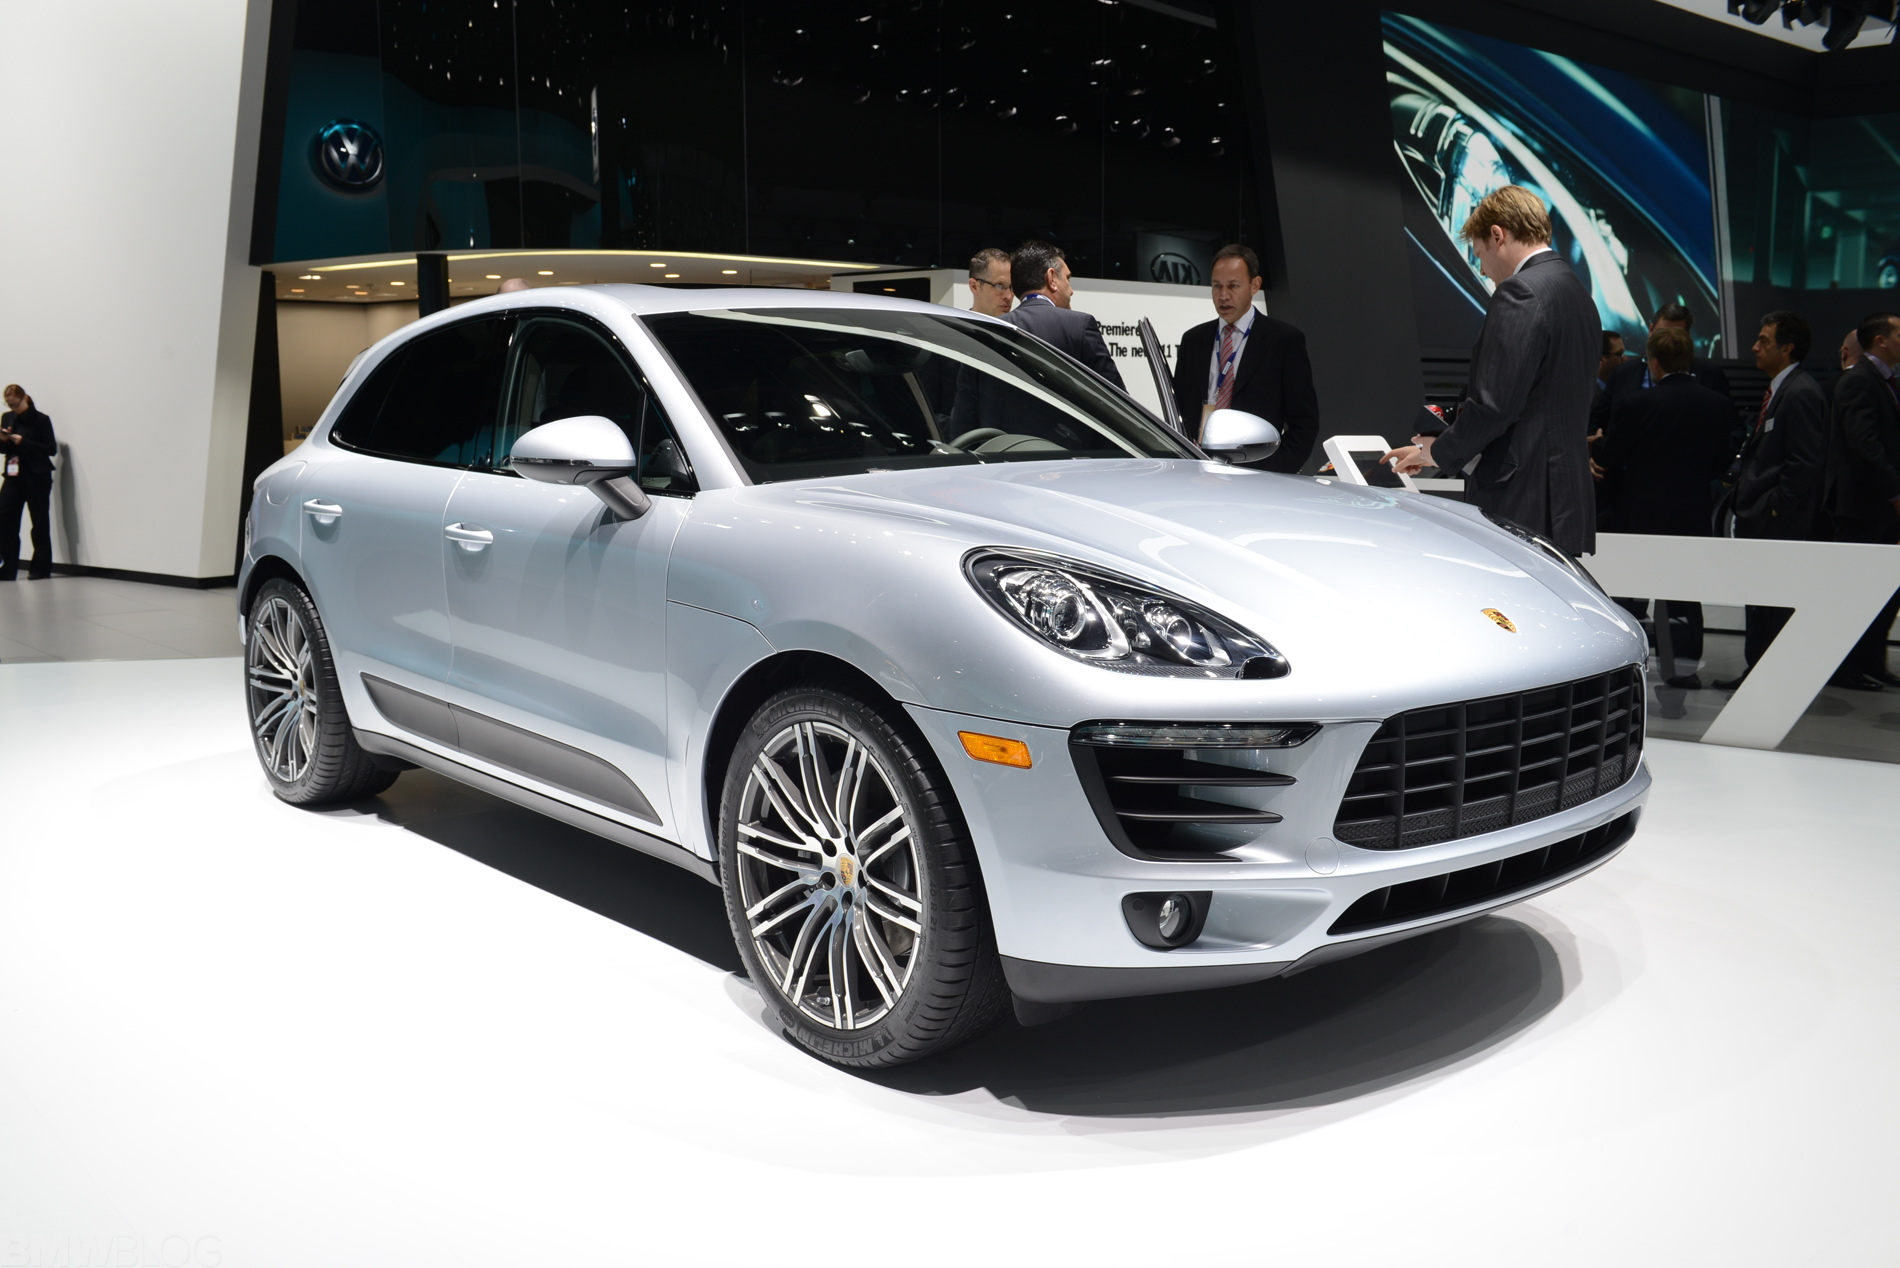 Porsche Macan At 2014 Naias